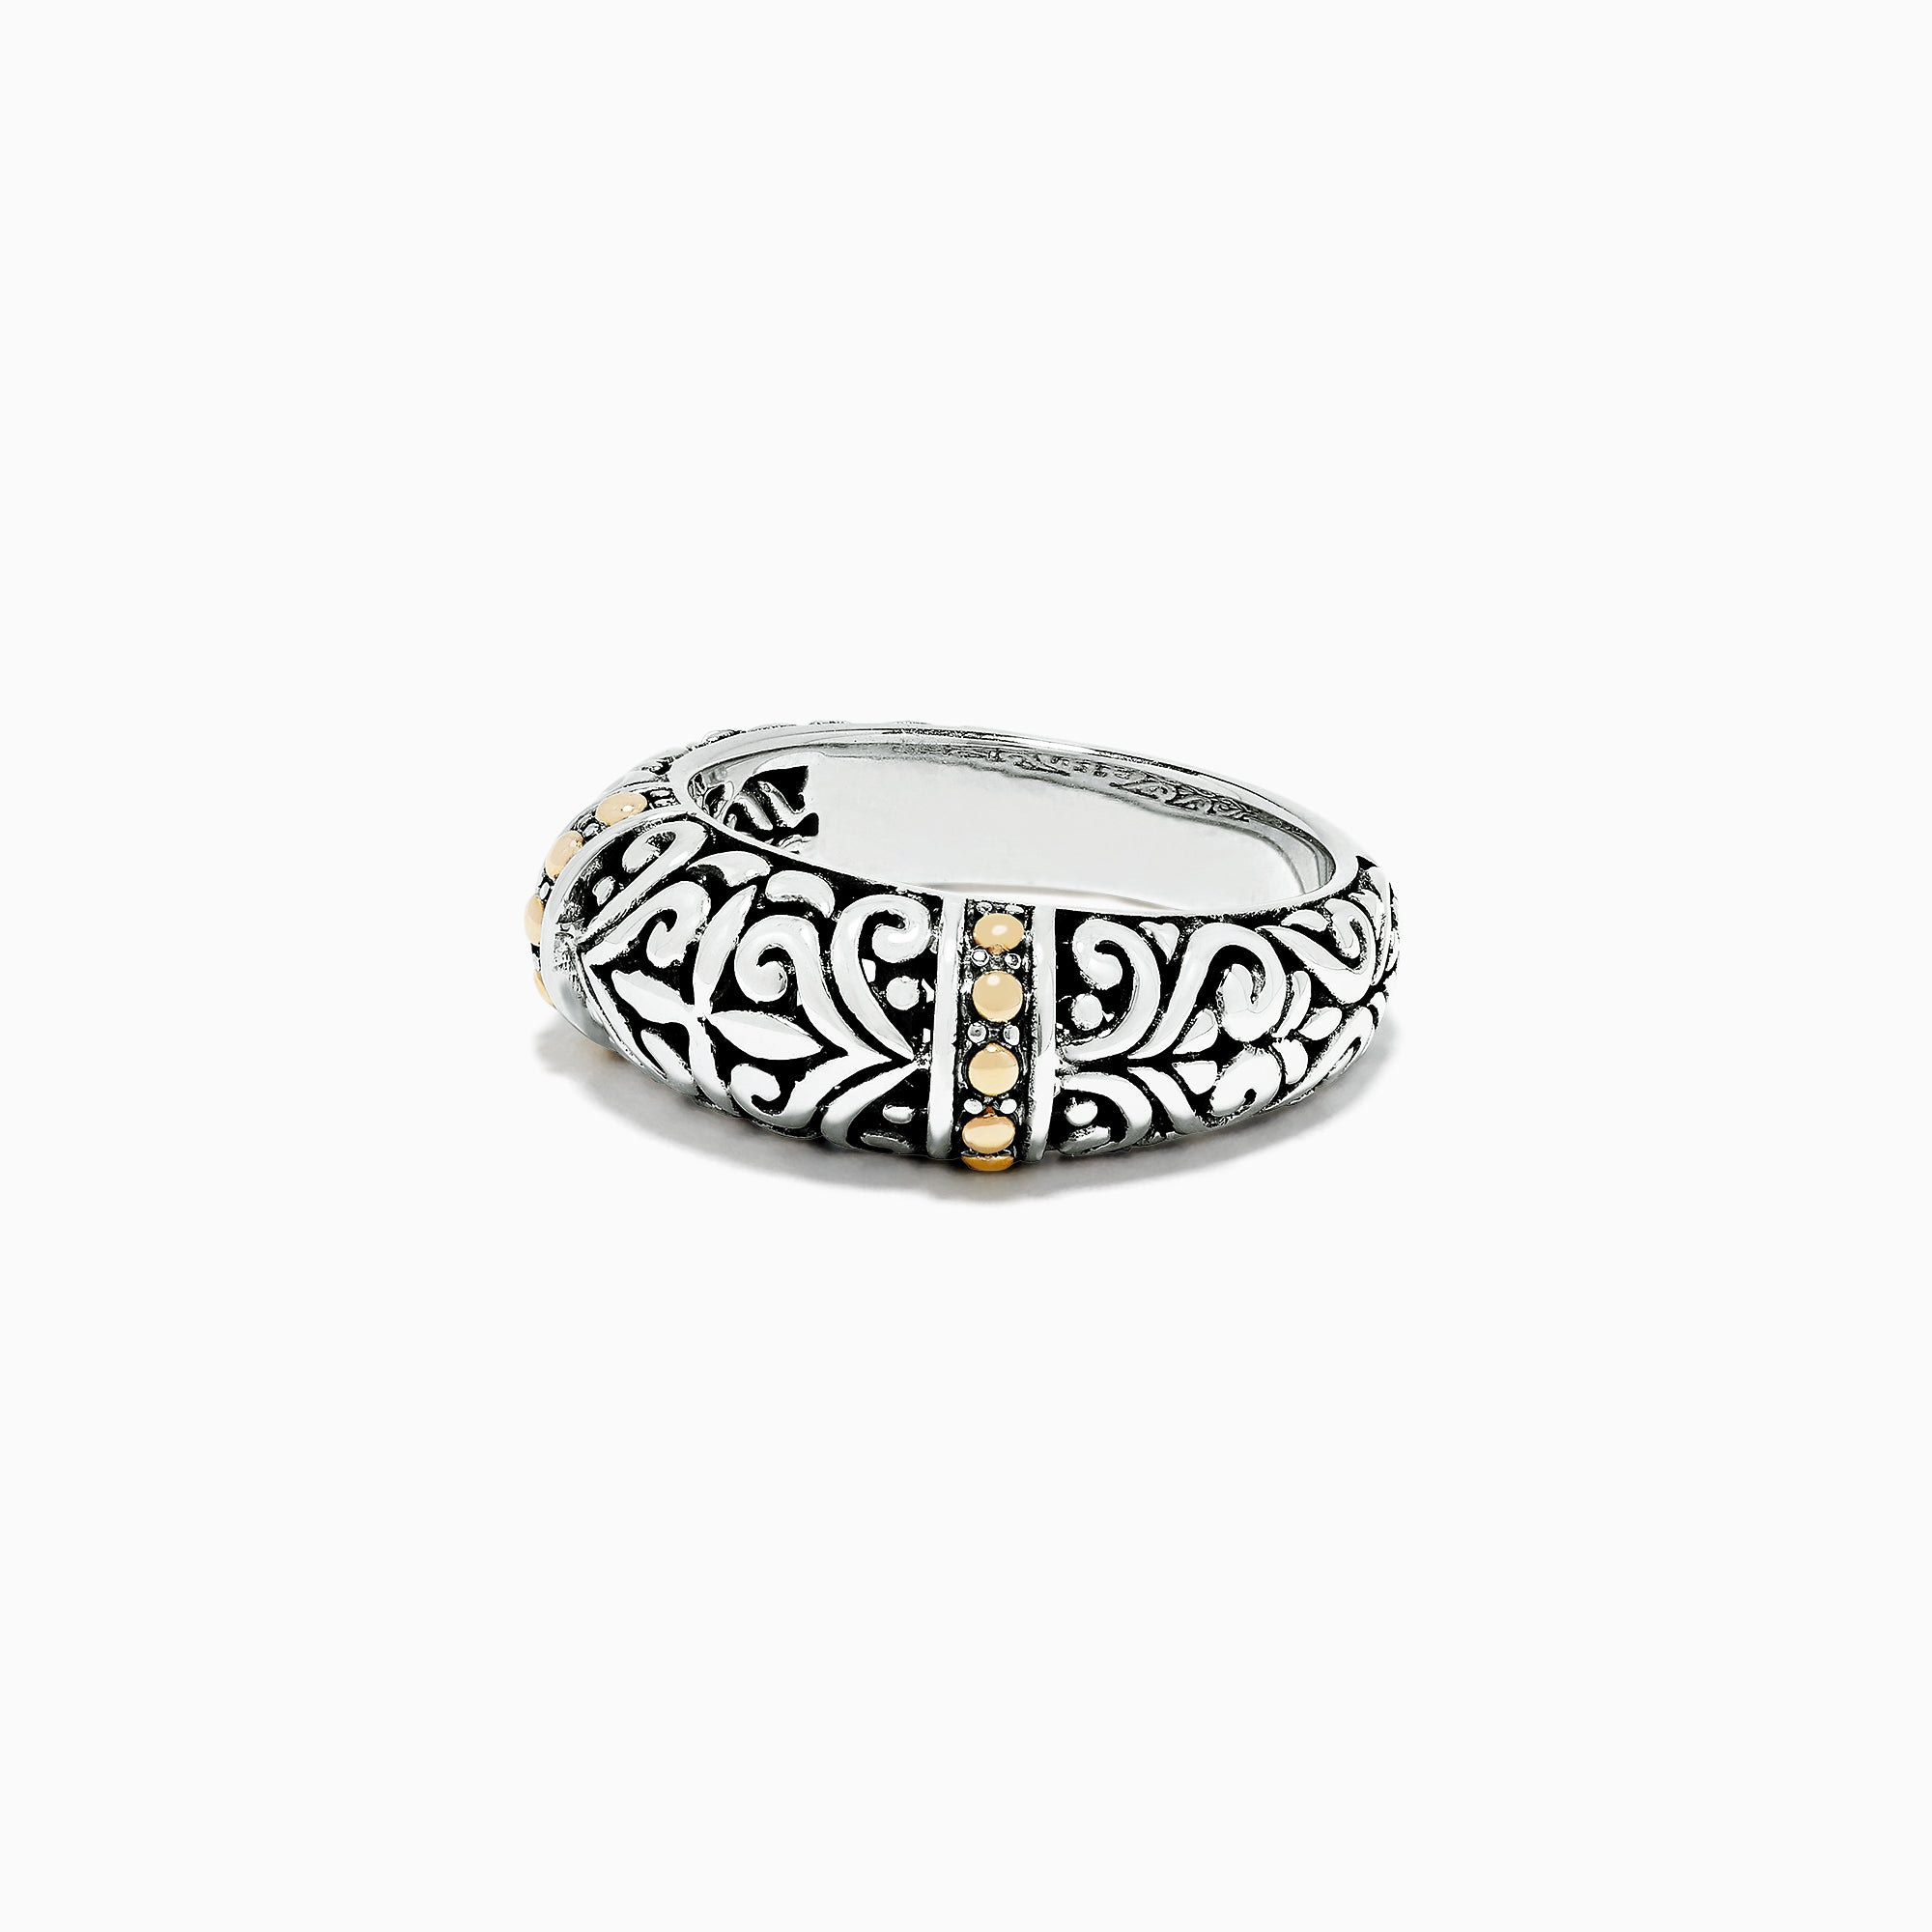 Effy 925 Sterling Silver and 18K Gold Ring